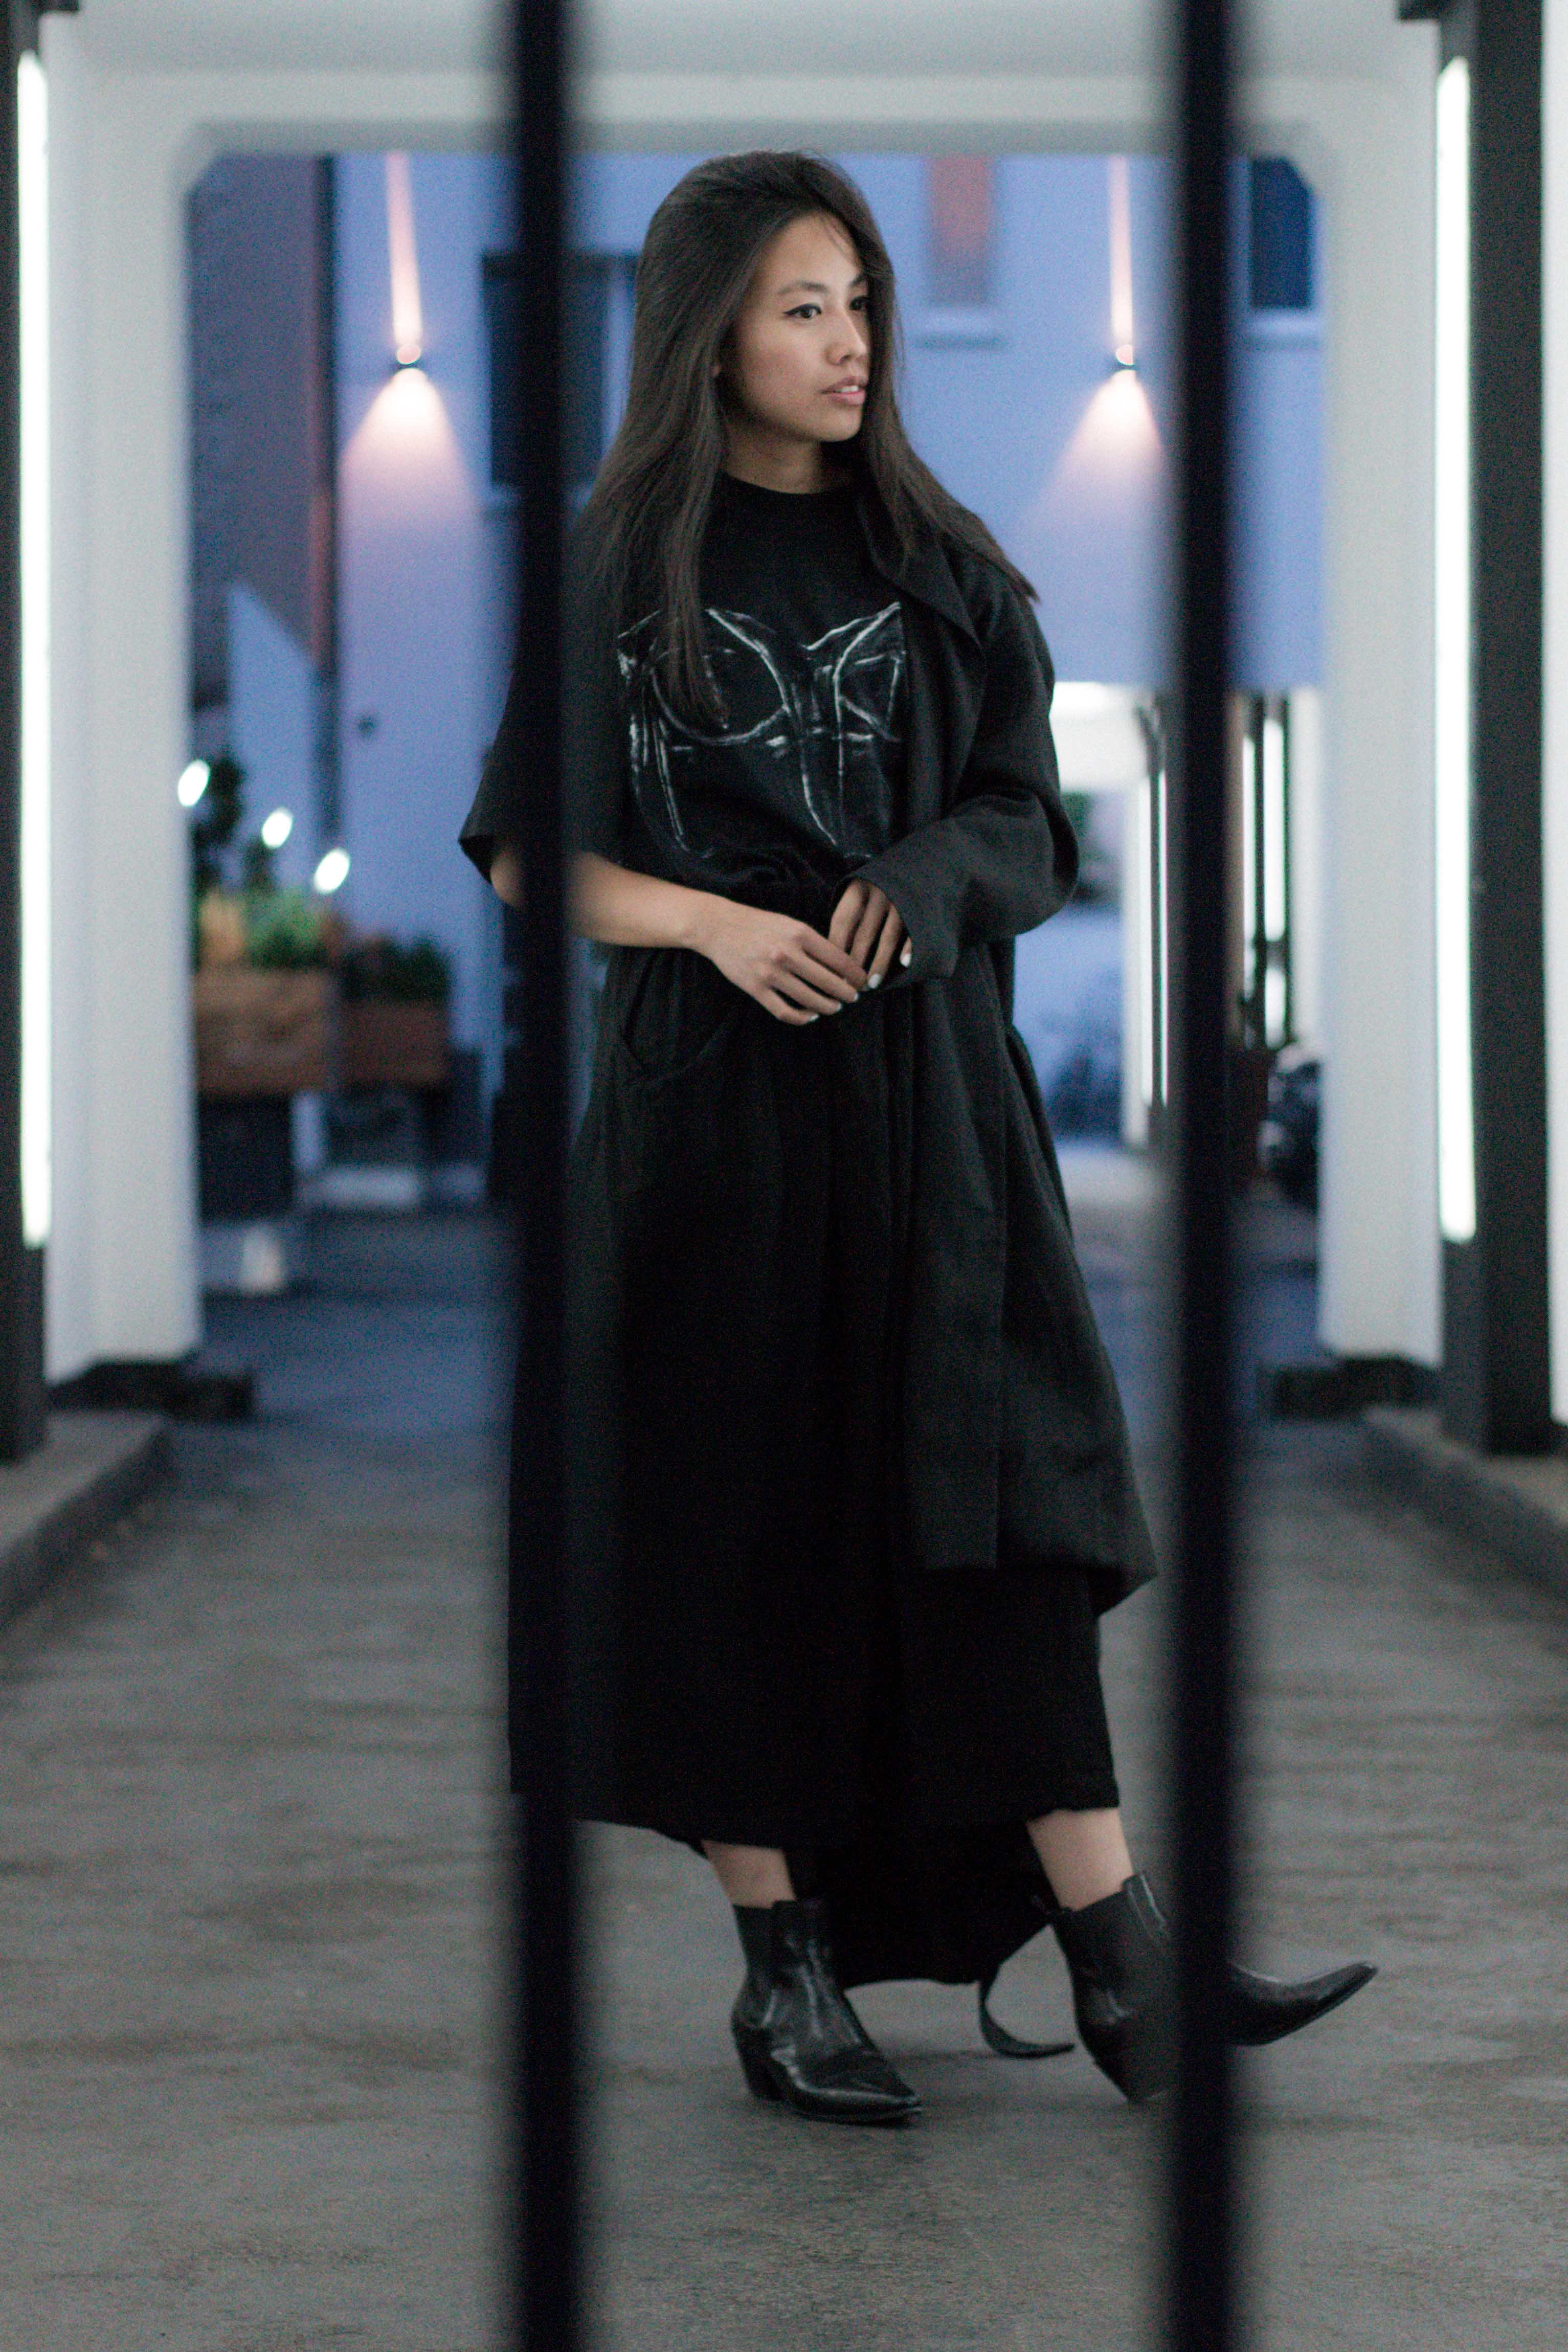 I HEART ALICE - Fashionblog from Berlin, Germany: Alice M. Huynh wearing Yohji Yamamoto, Maison Martin Margiela, All Saints, Saint Laurent Paris during Fashion Week Berlin